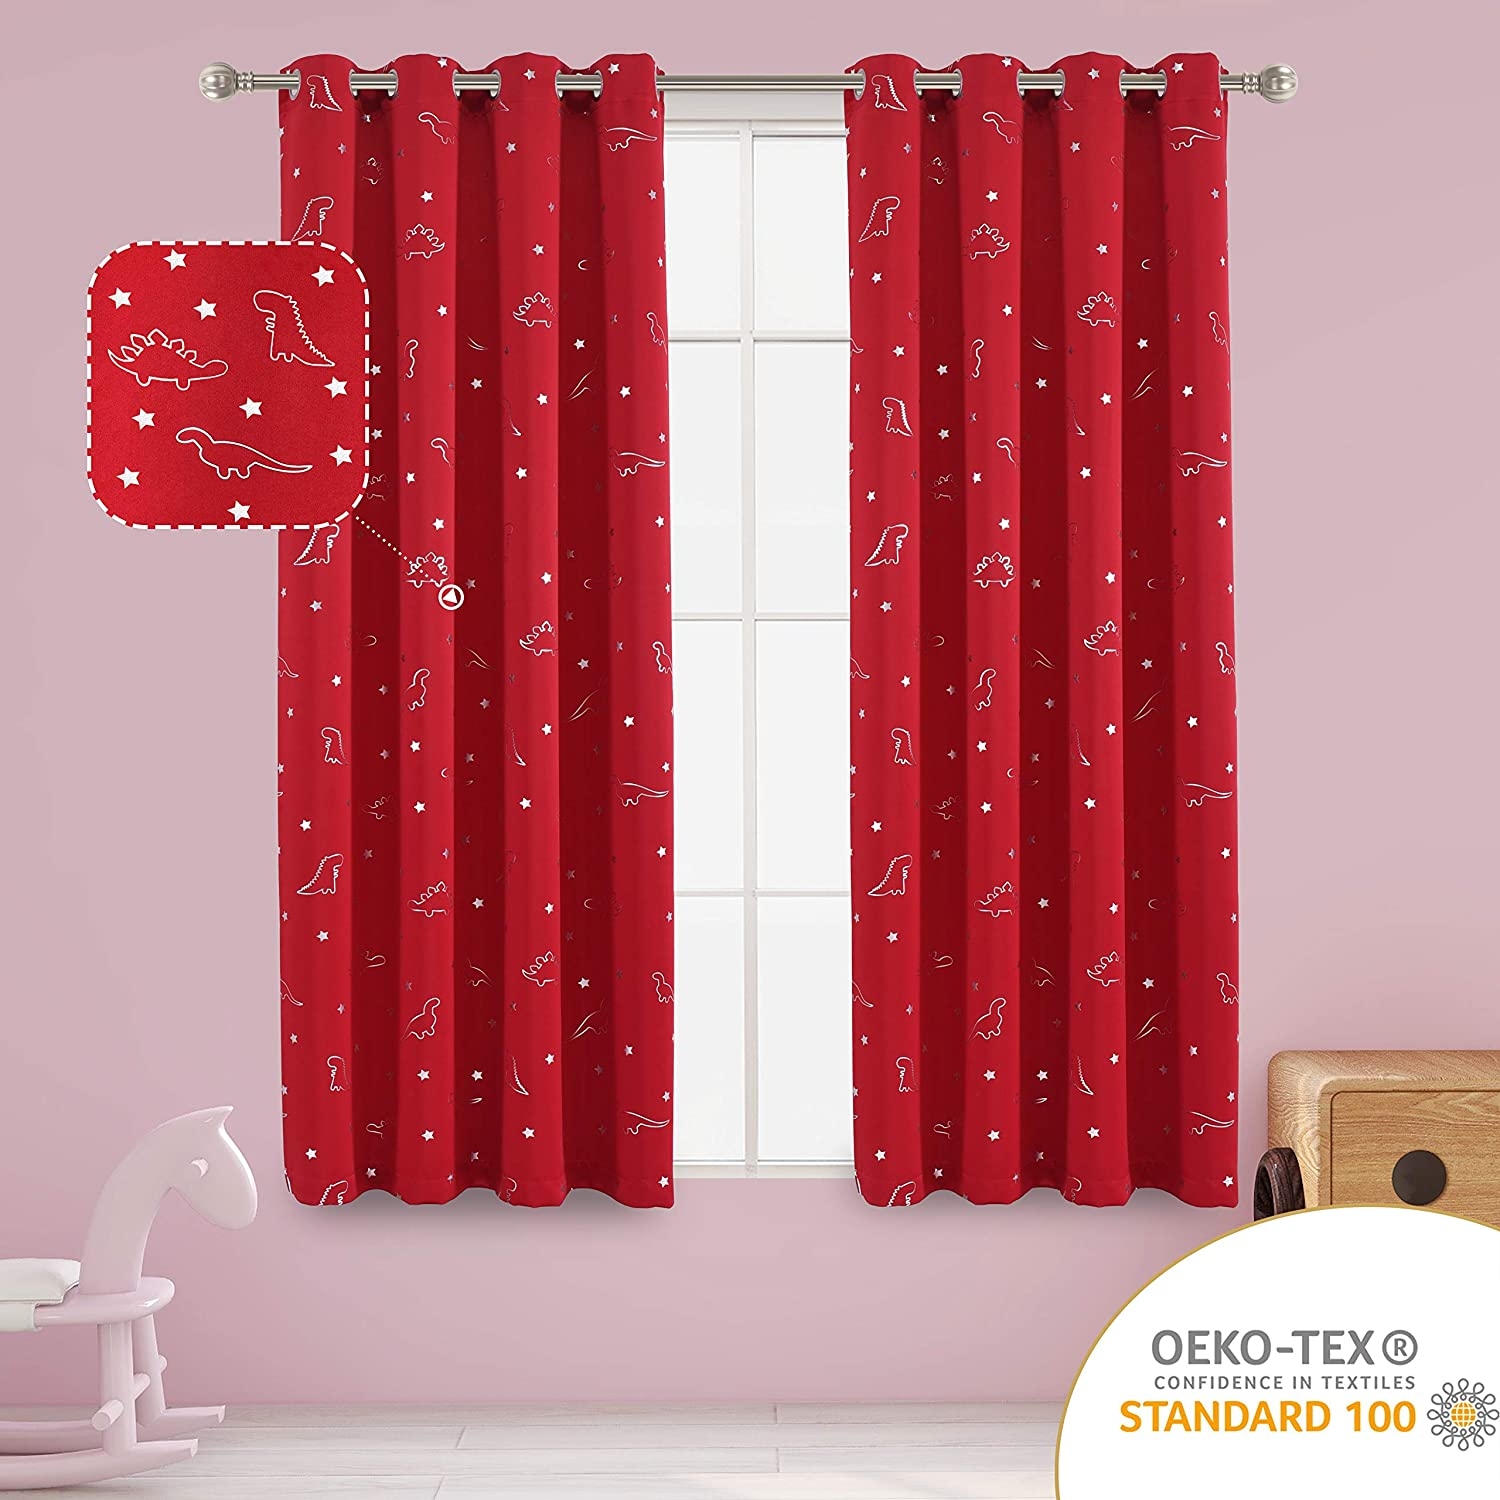 LORDTEX Dinosaur and Star Foil Print Blackout Curtains for Kids Room - Thermal Insulated Curtains Noise Reducing Window Drapes for Boys and Girls Bedroom, 52 x 63 Inch, Red, Set of 2 Panels